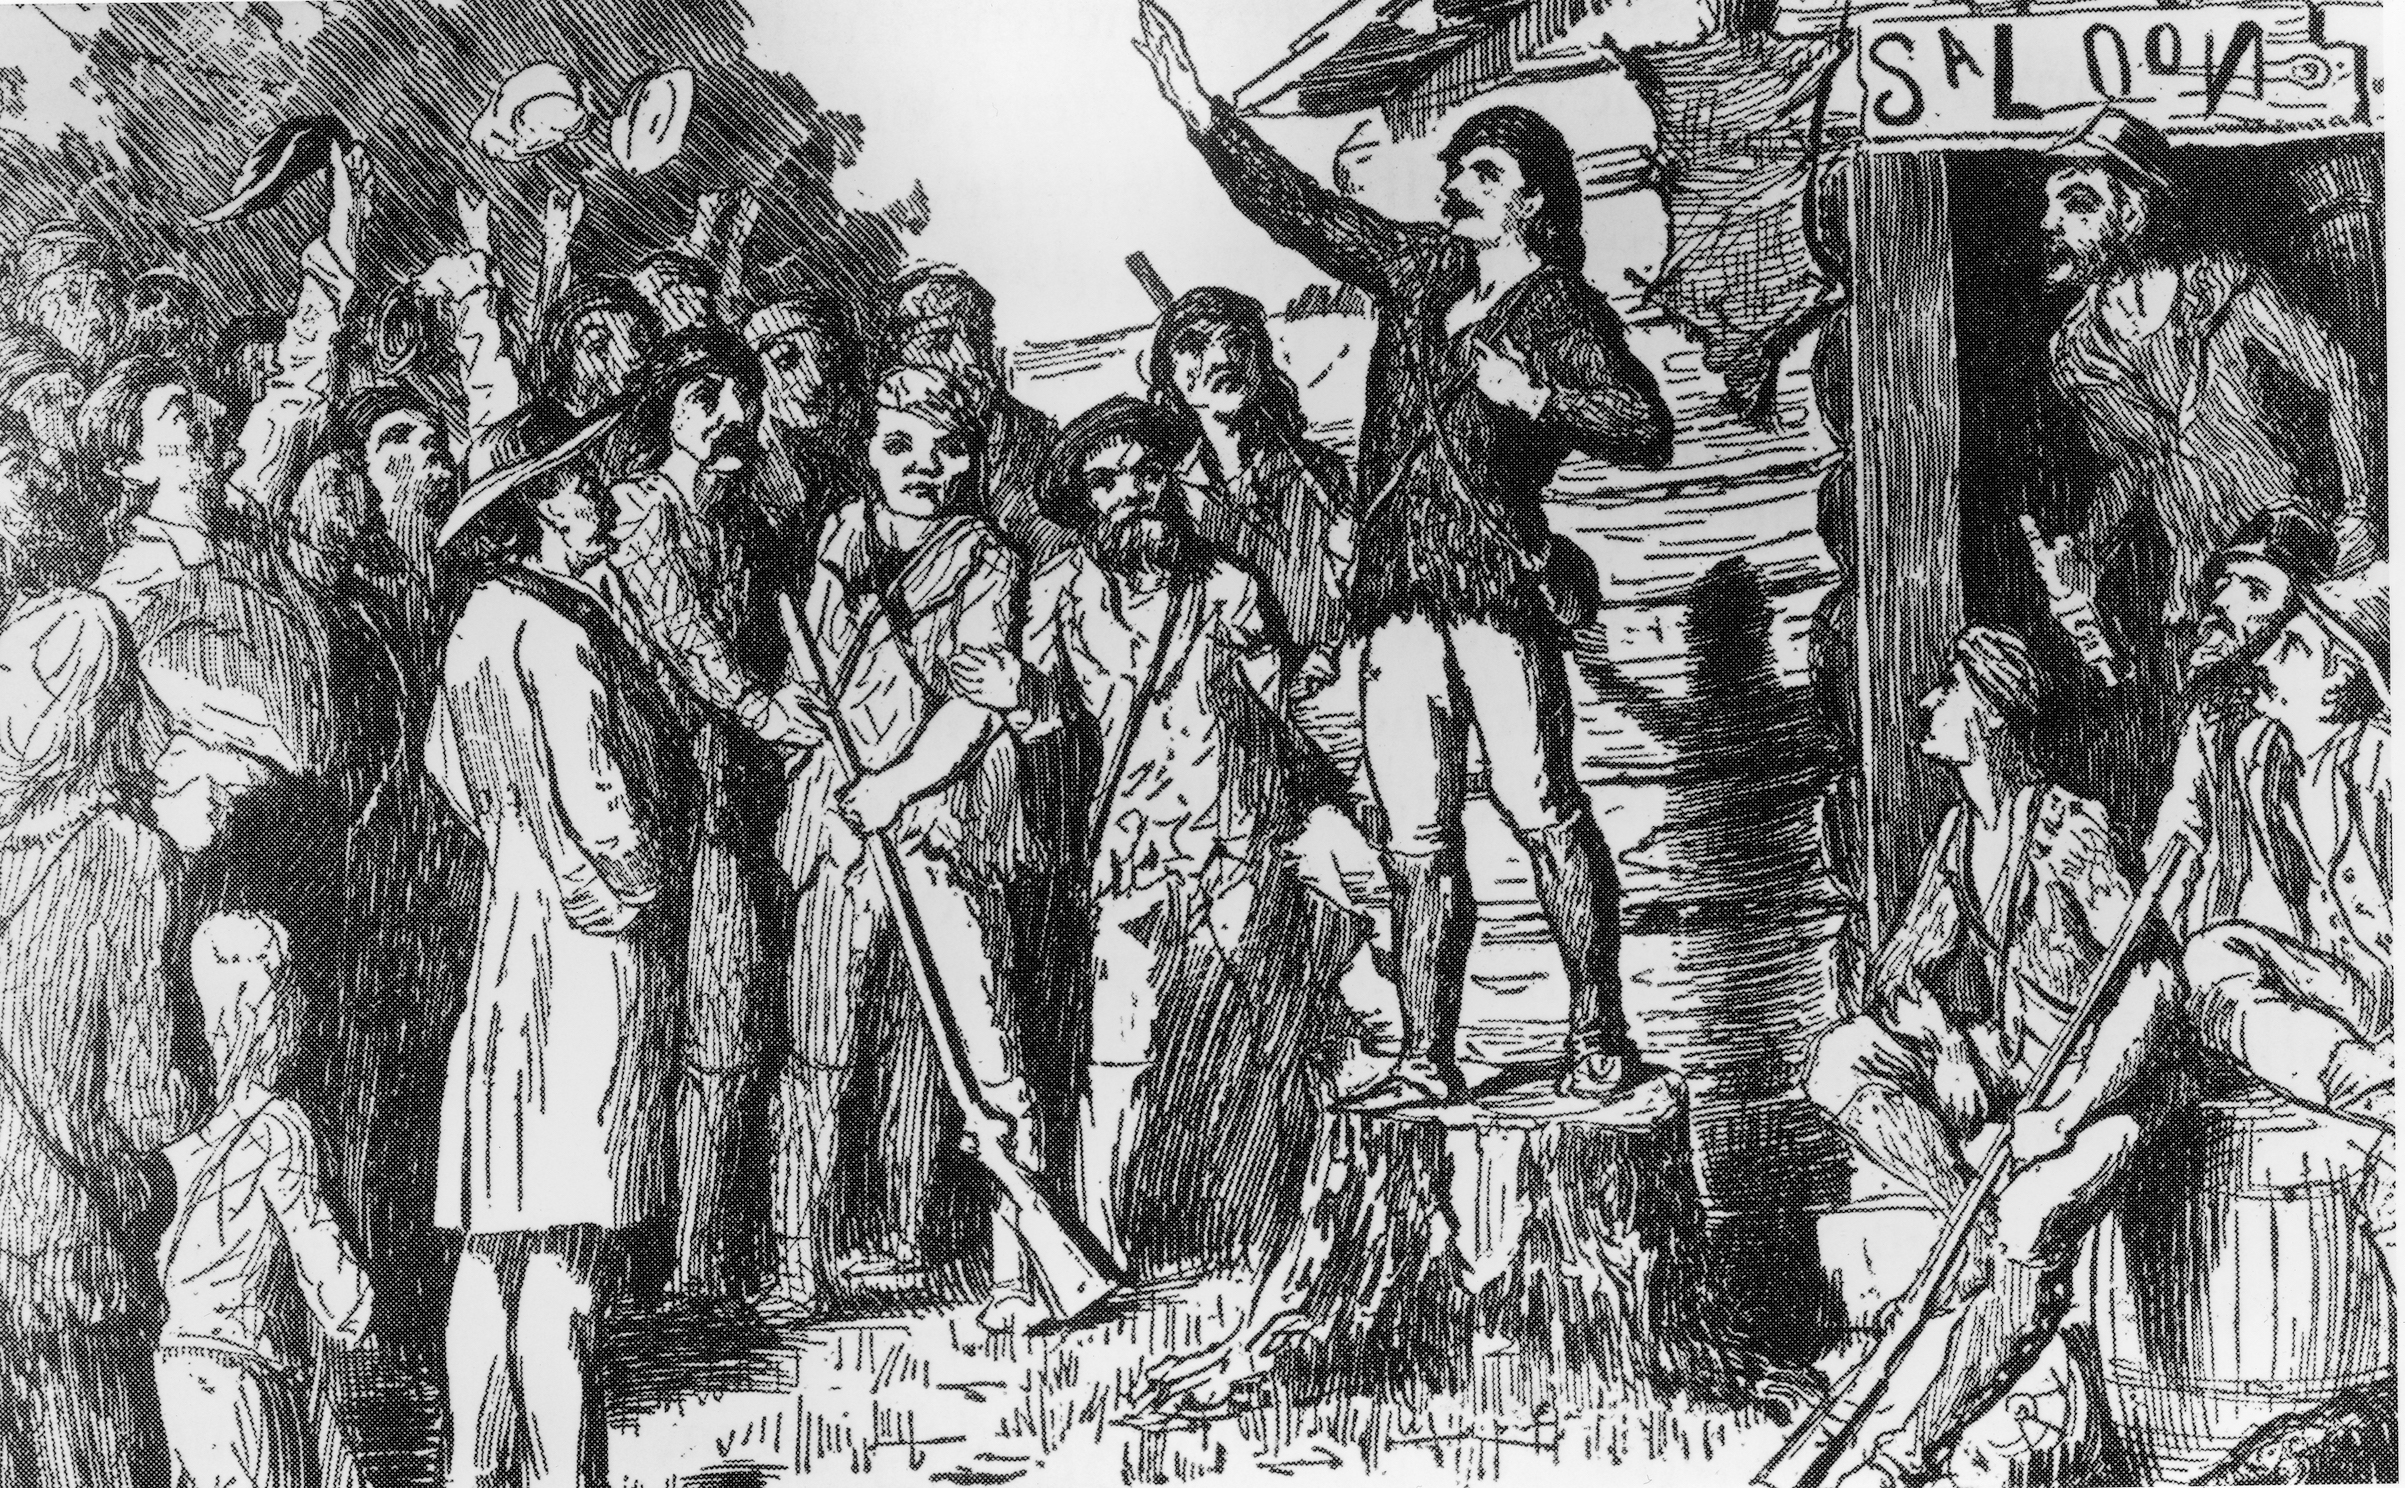 Illustration of Davy Crockett campaigning for the House of Representatives to a group of people, circa 1800s.